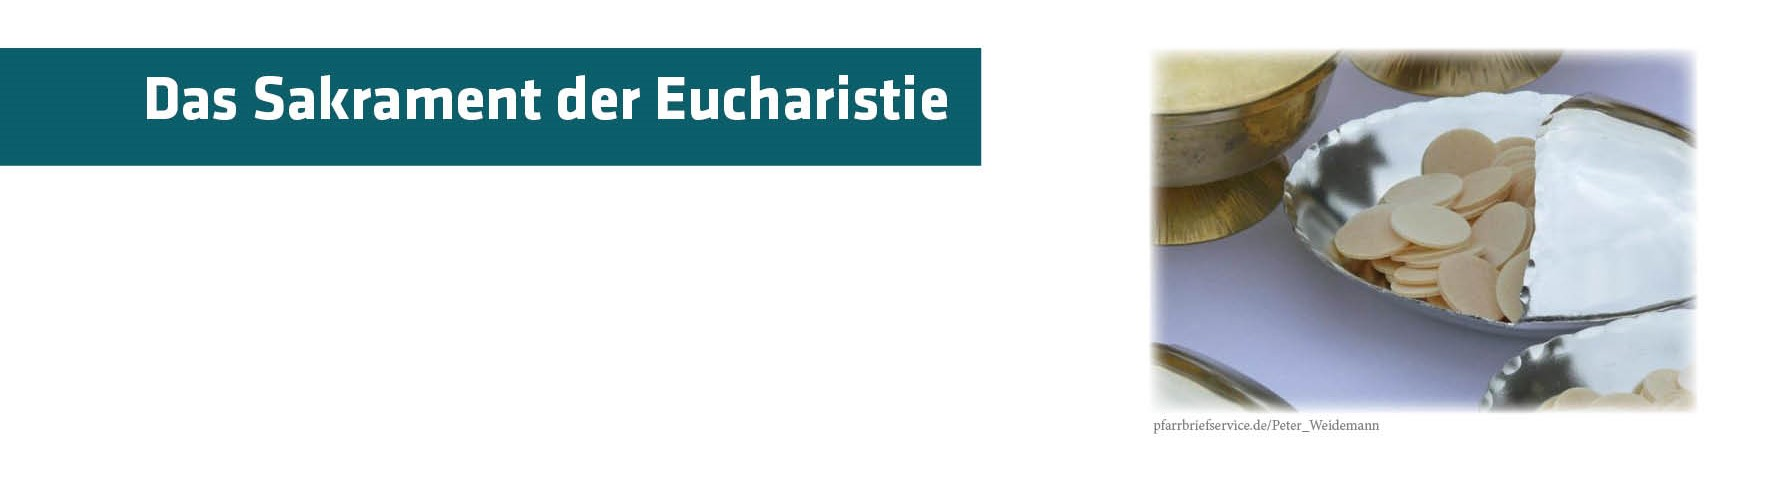 Eucharistie_cut